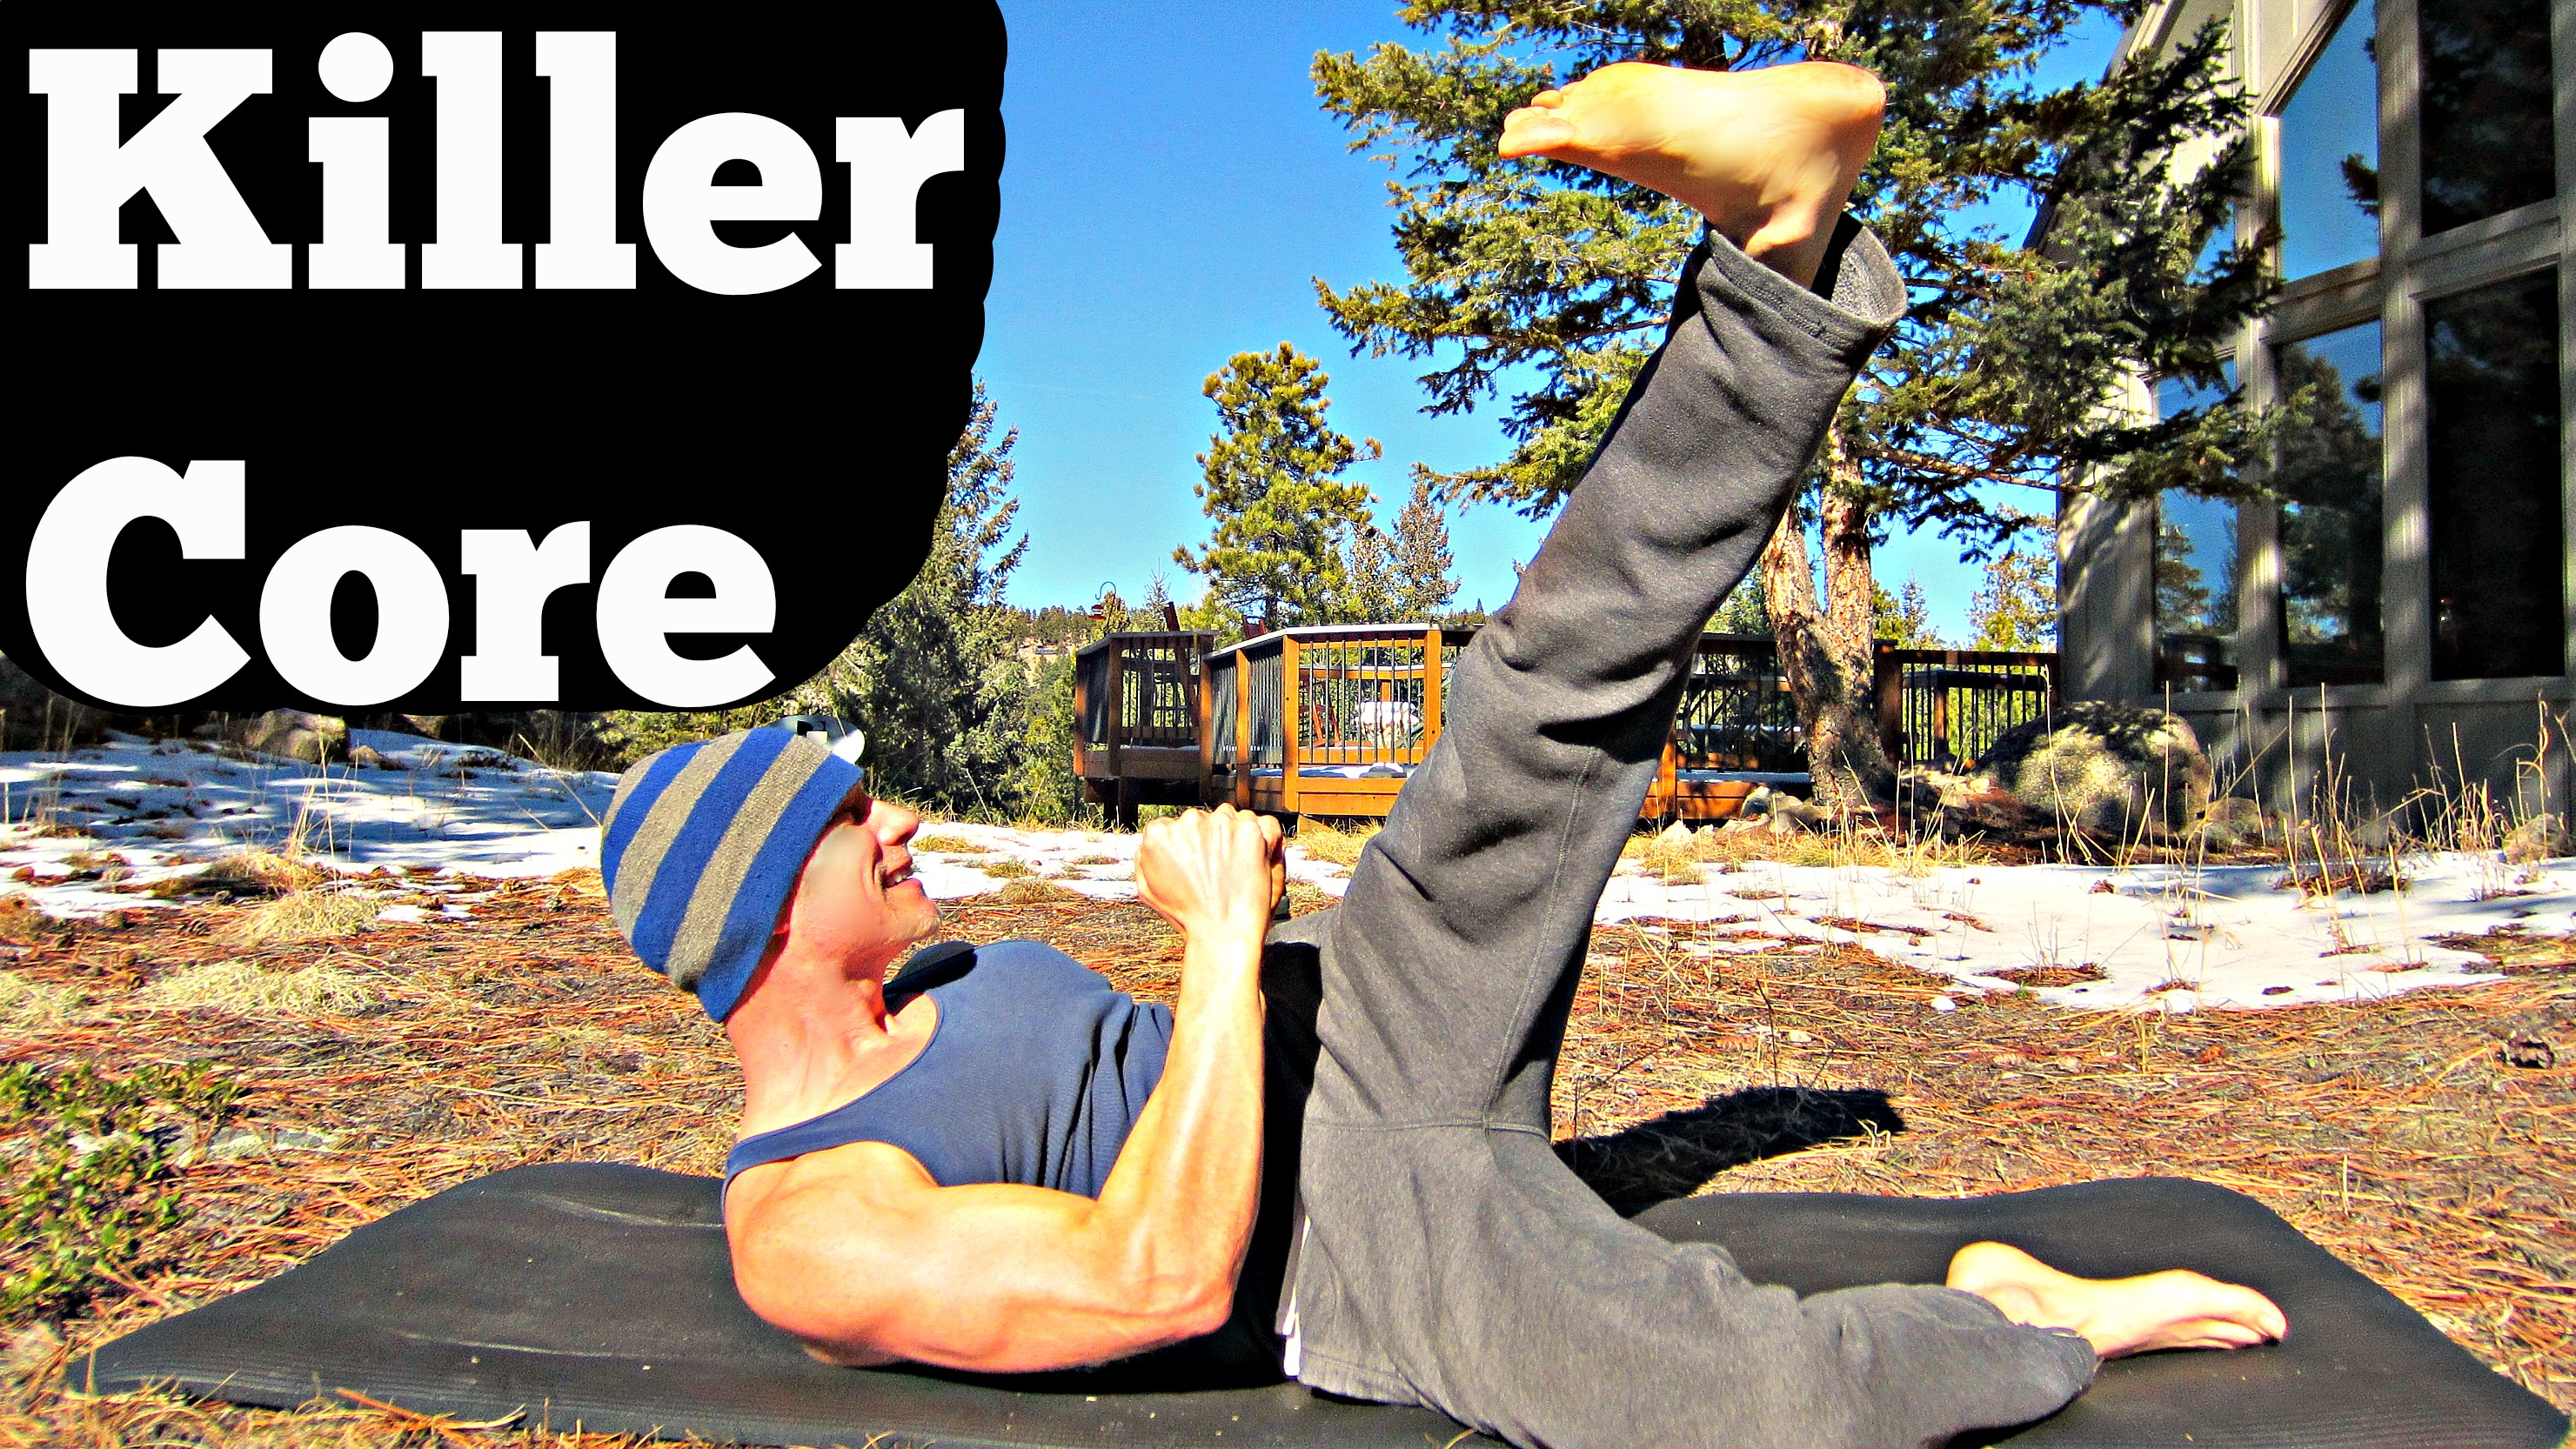 ... Core Workout Video! Welcome to 10 Minutes of Muscle Shredding Bliss!